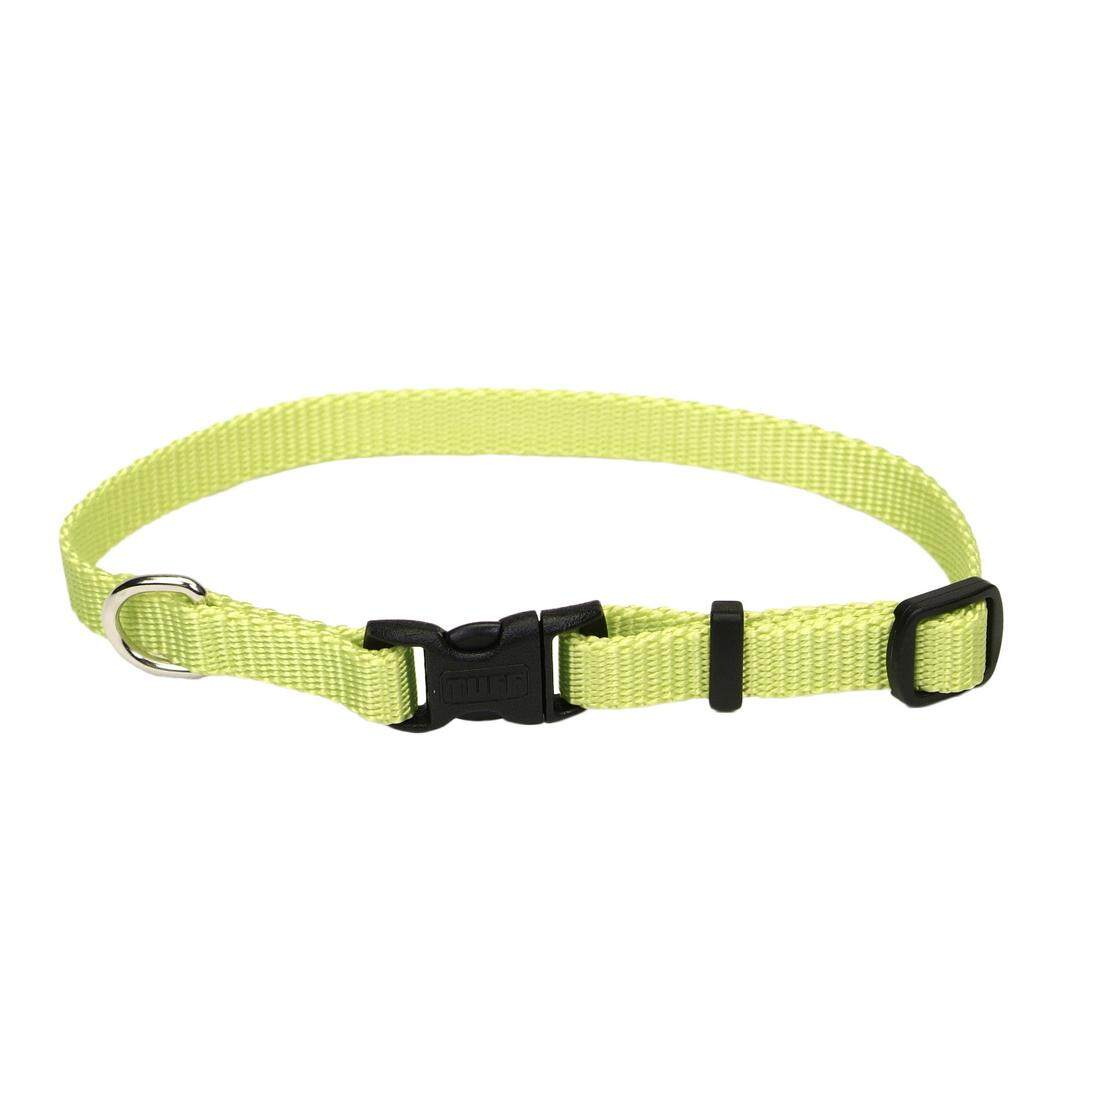 "[Coastal] Adjustable Nylon Dog Collar with Plastic Buckle 3/4"" M - Lime"